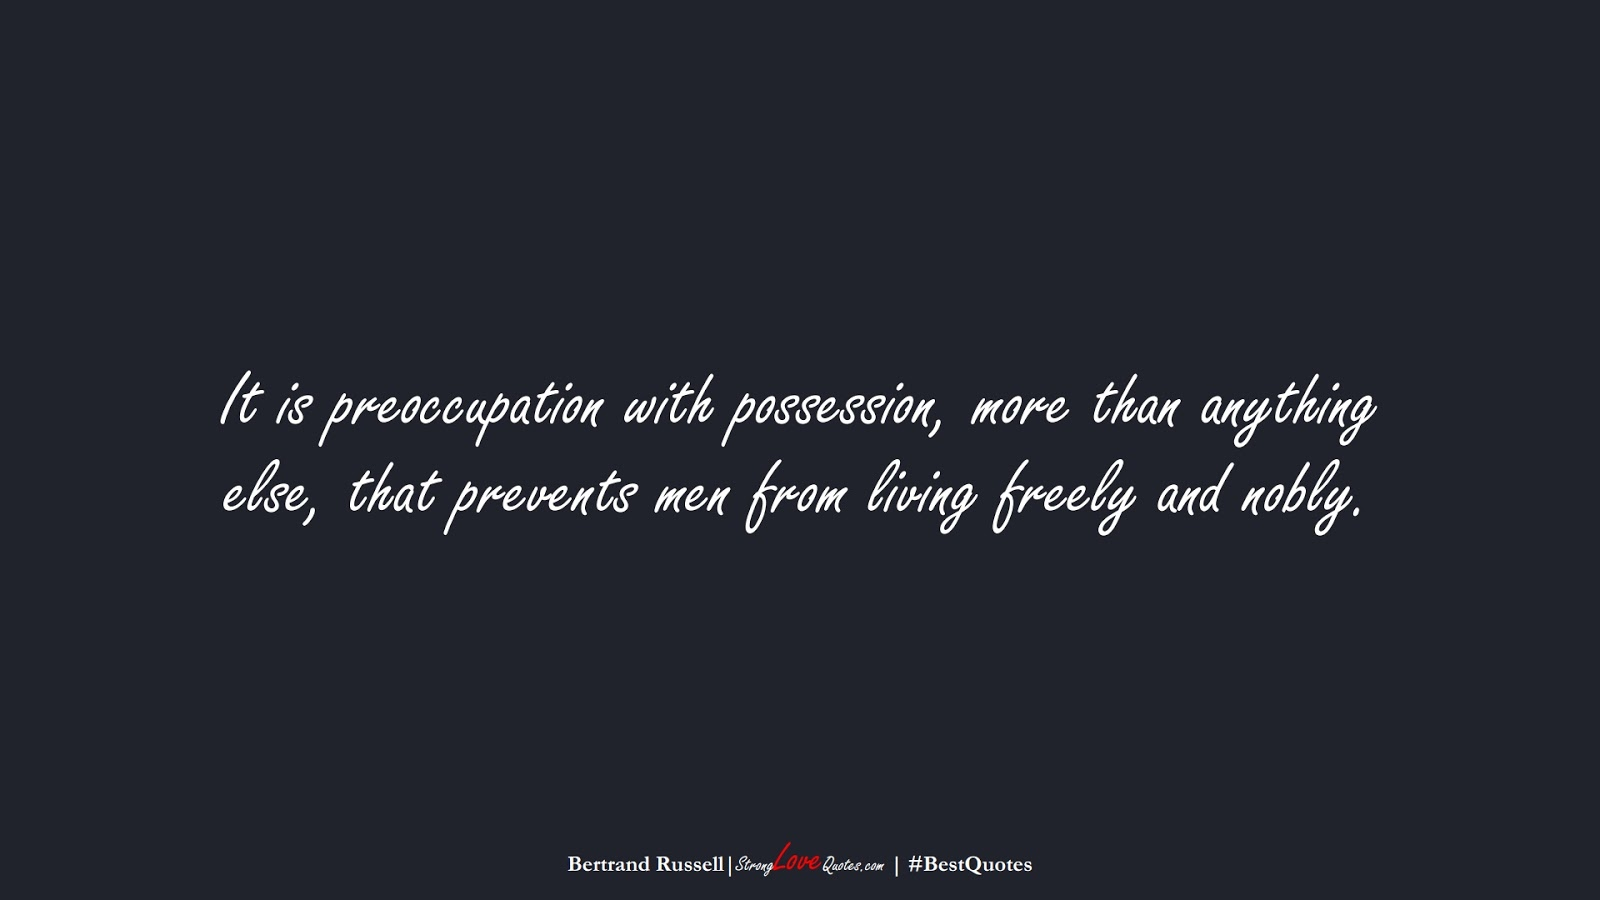 It is preoccupation with possession, more than anything else, that prevents men from living freely and nobly. (Bertrand Russell);  #BestQuotes